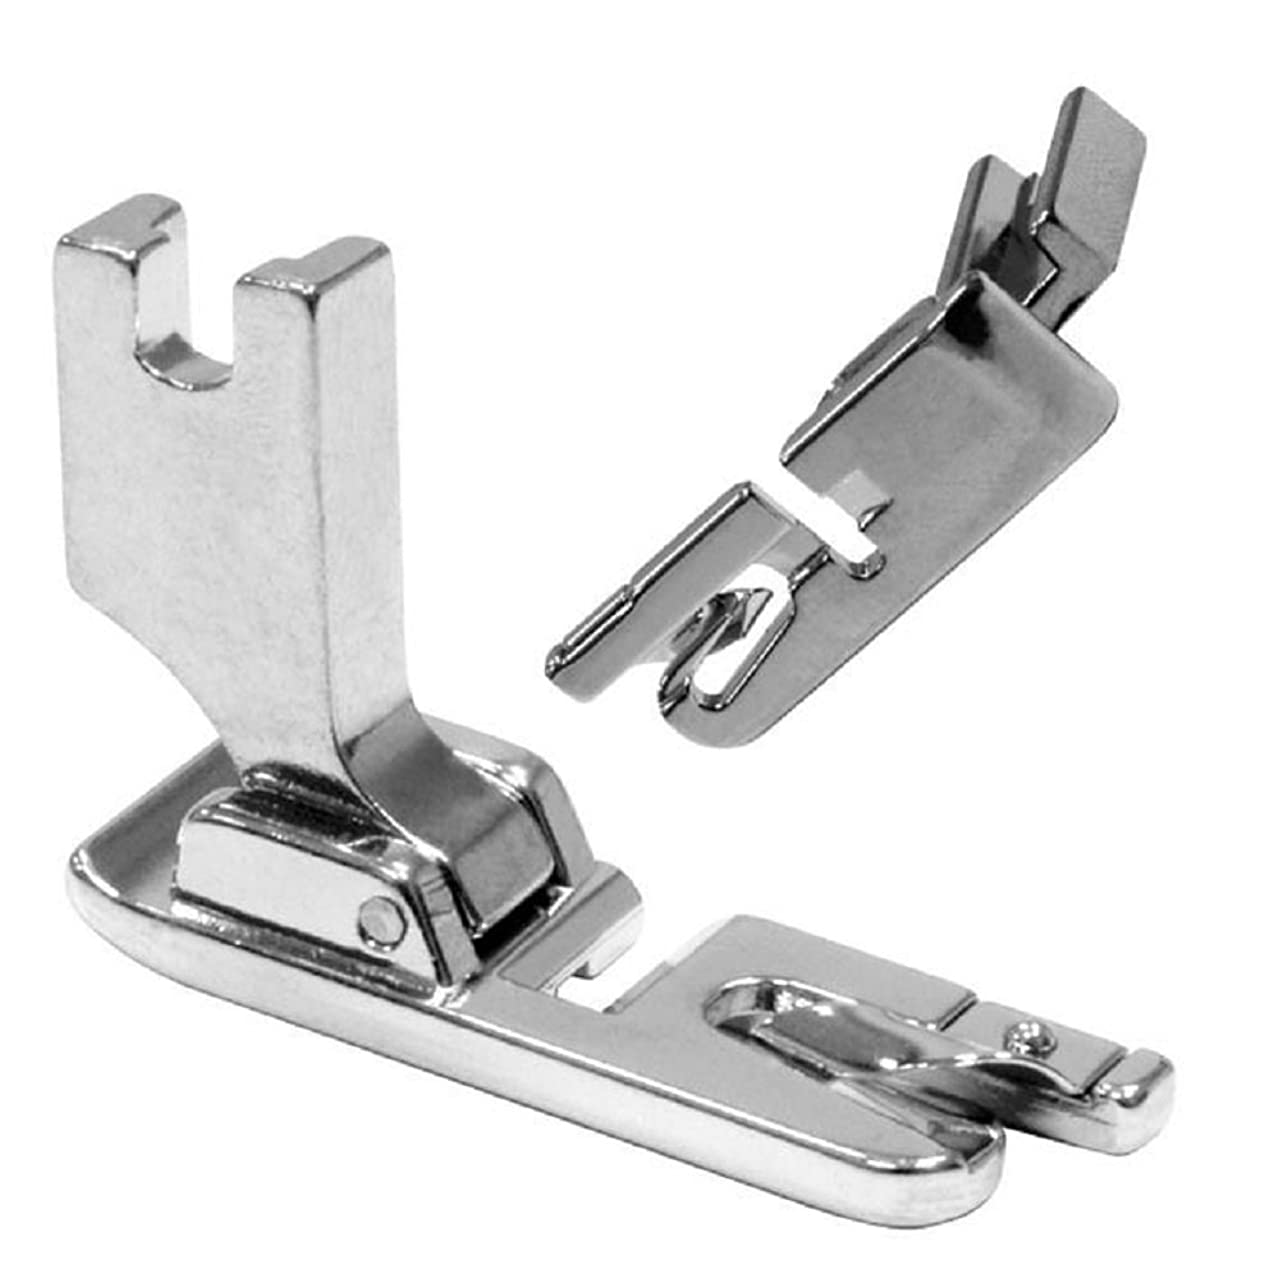 TFBOY Low Shank Narrow Rolled Hem Sewing Machine Presser Foot 1/8 Inch - Fits All Low Shank Snap-On Singer, Brother, Babylock, Euro-Pro, Janome, Kenmore, White, Juki, New Home